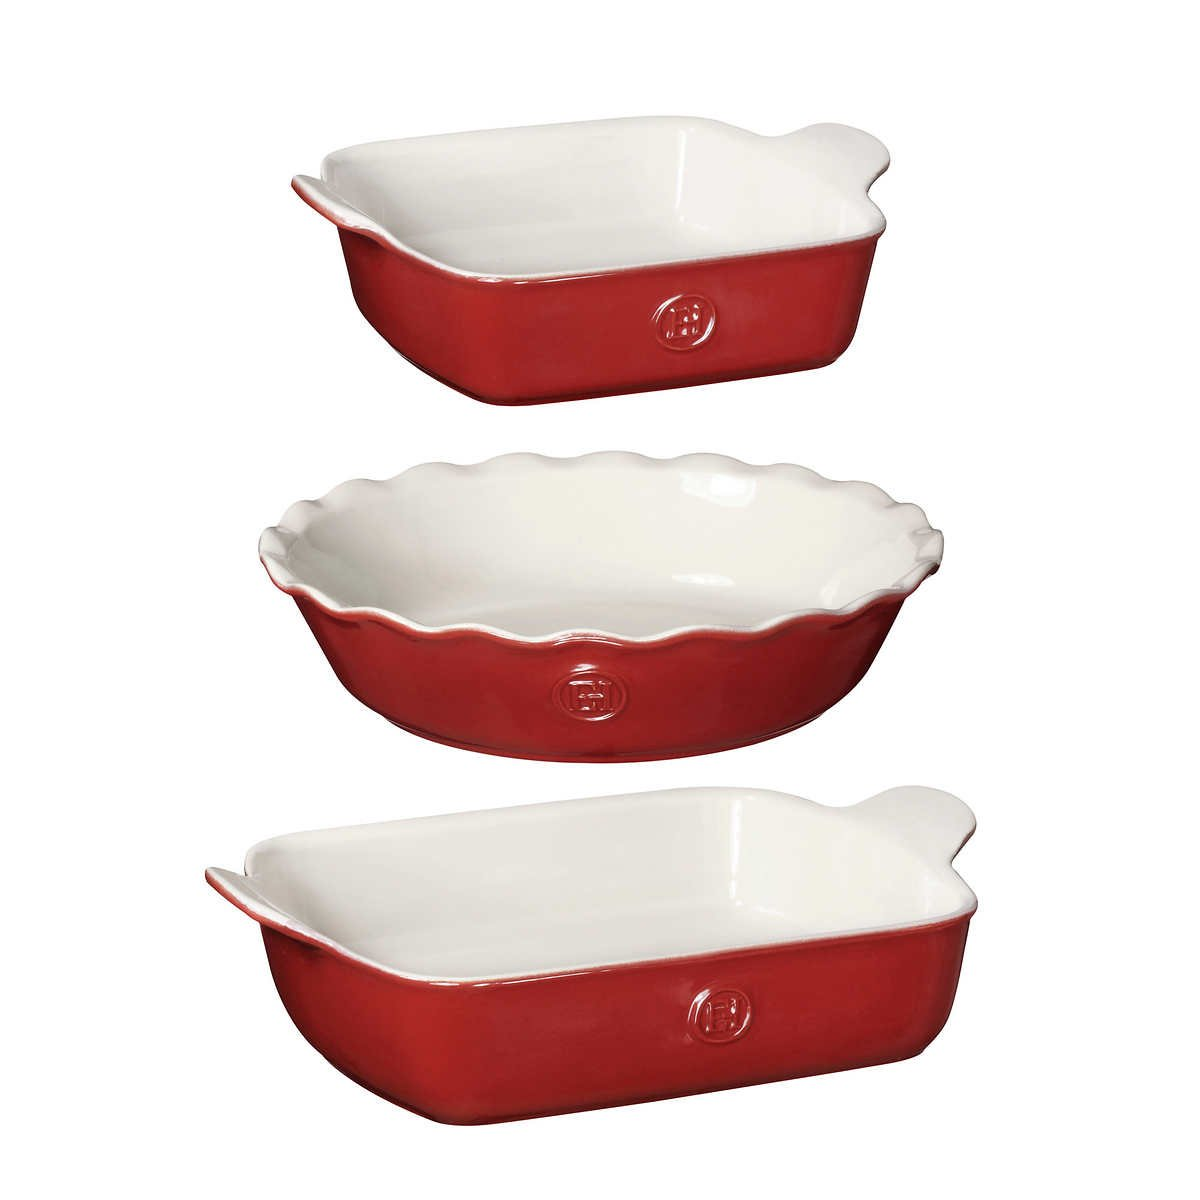 Emile Henry 3-piece Everyday Set (Red)